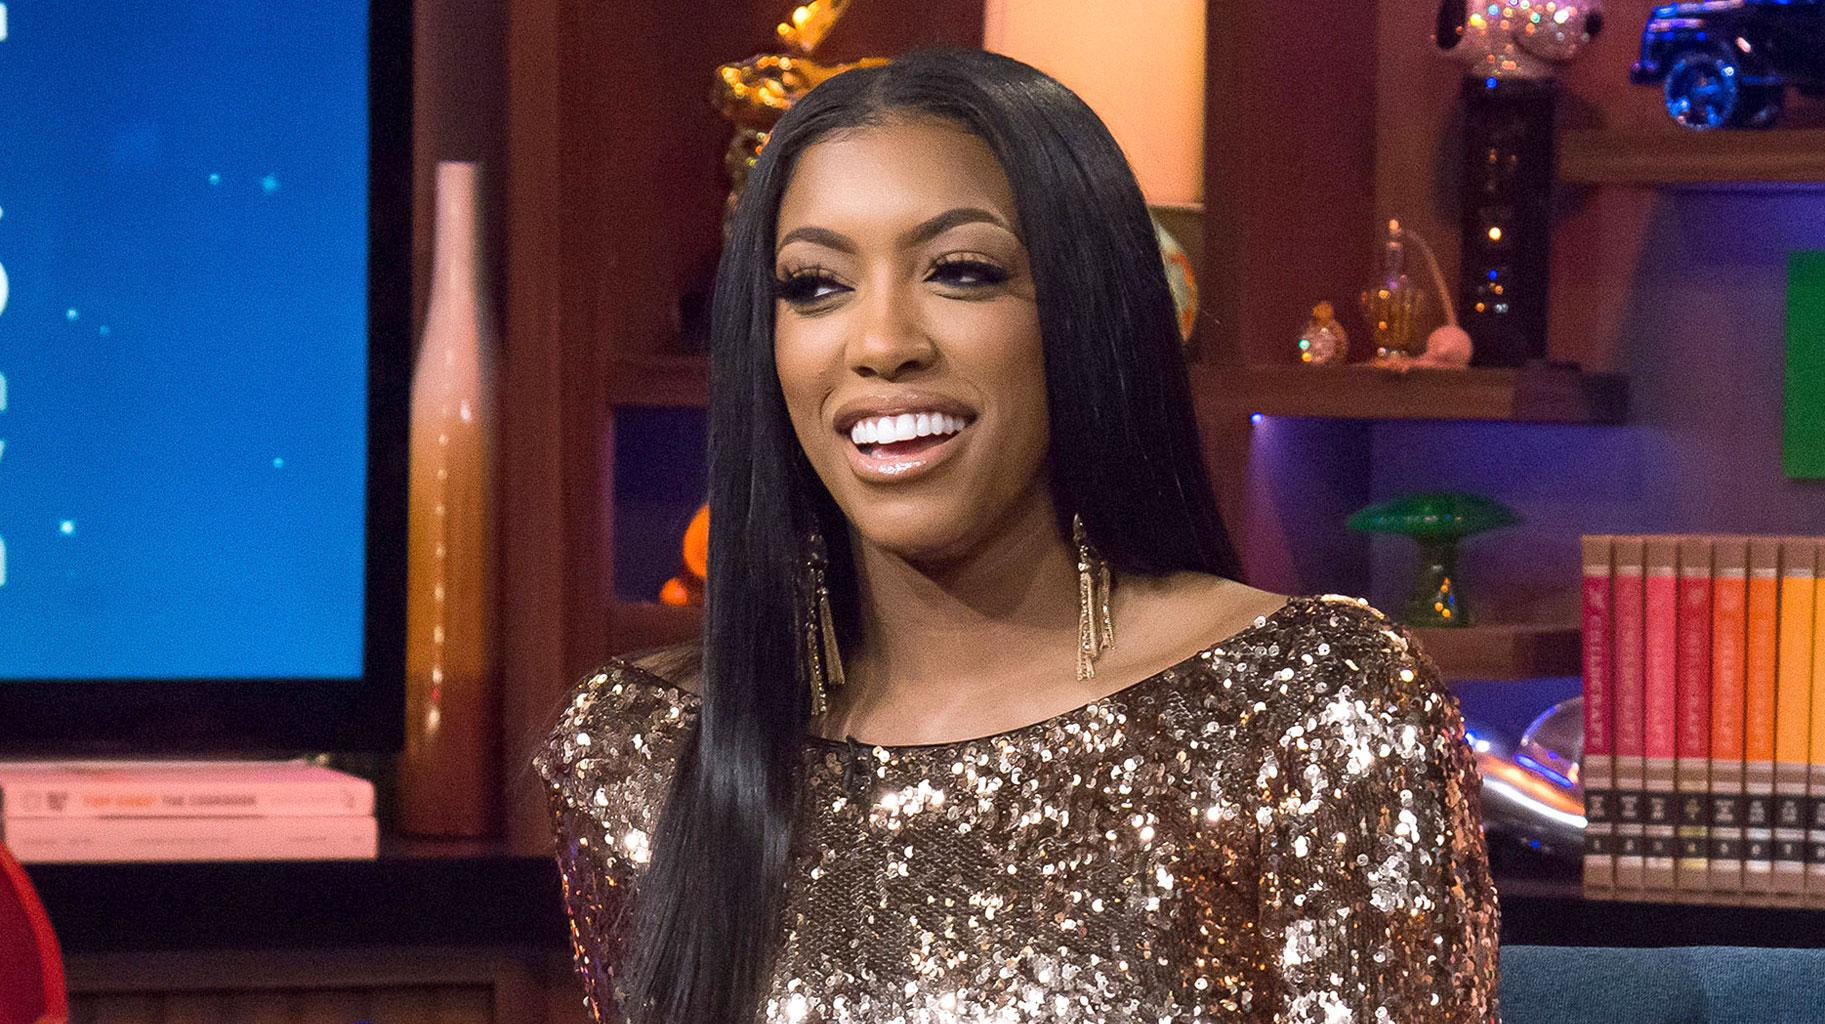 Porsha Williams Is Sad To Take Down Her Christmas Tree - Check Out Her Latest Post In Which She's Waving Goodbye To The Festive Season